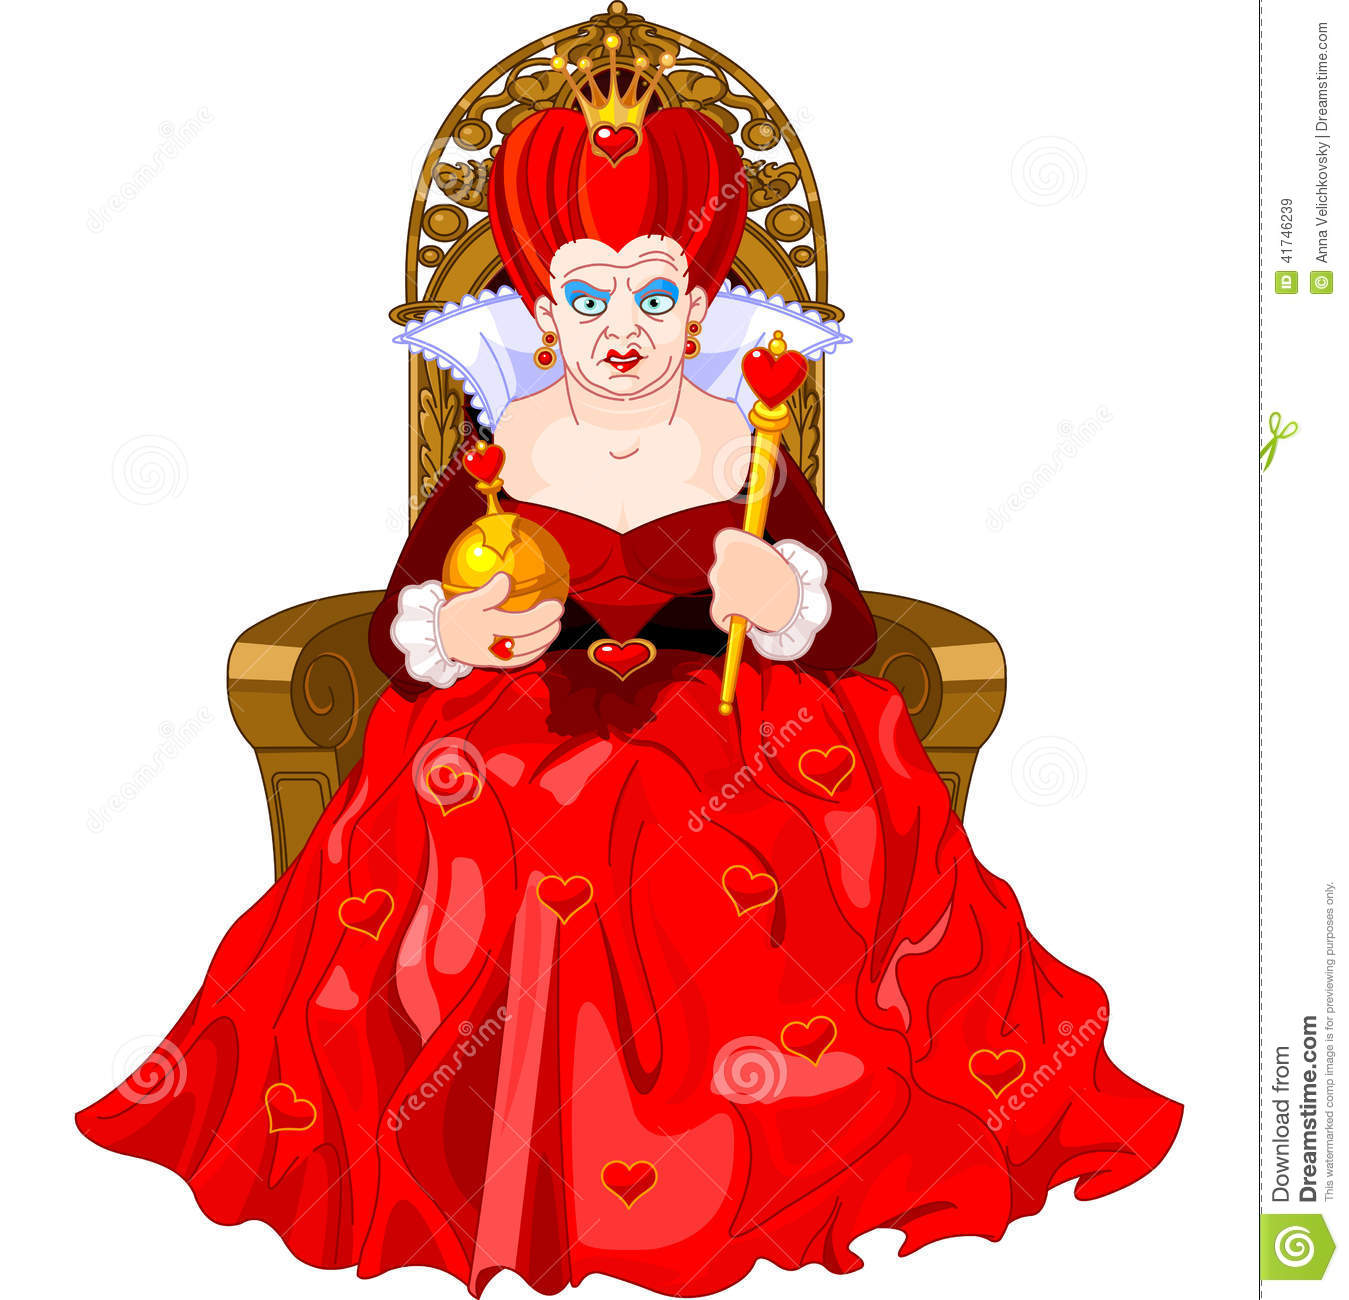 Angry Queen On Throne Stock Vector - Image: 41746239